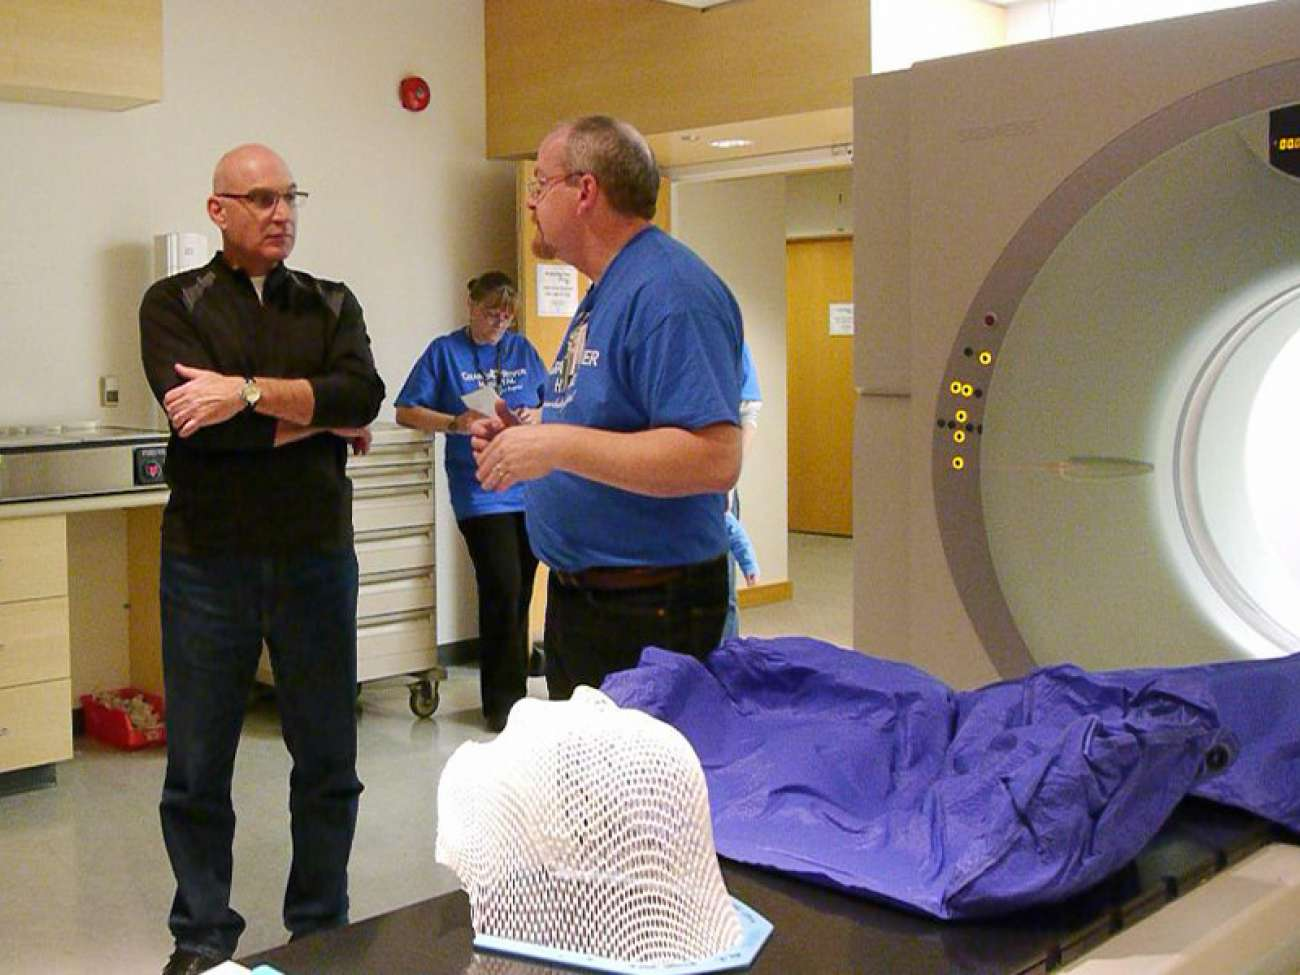 GRH currently has one CT simulator (shown) for radiation therapy planning.